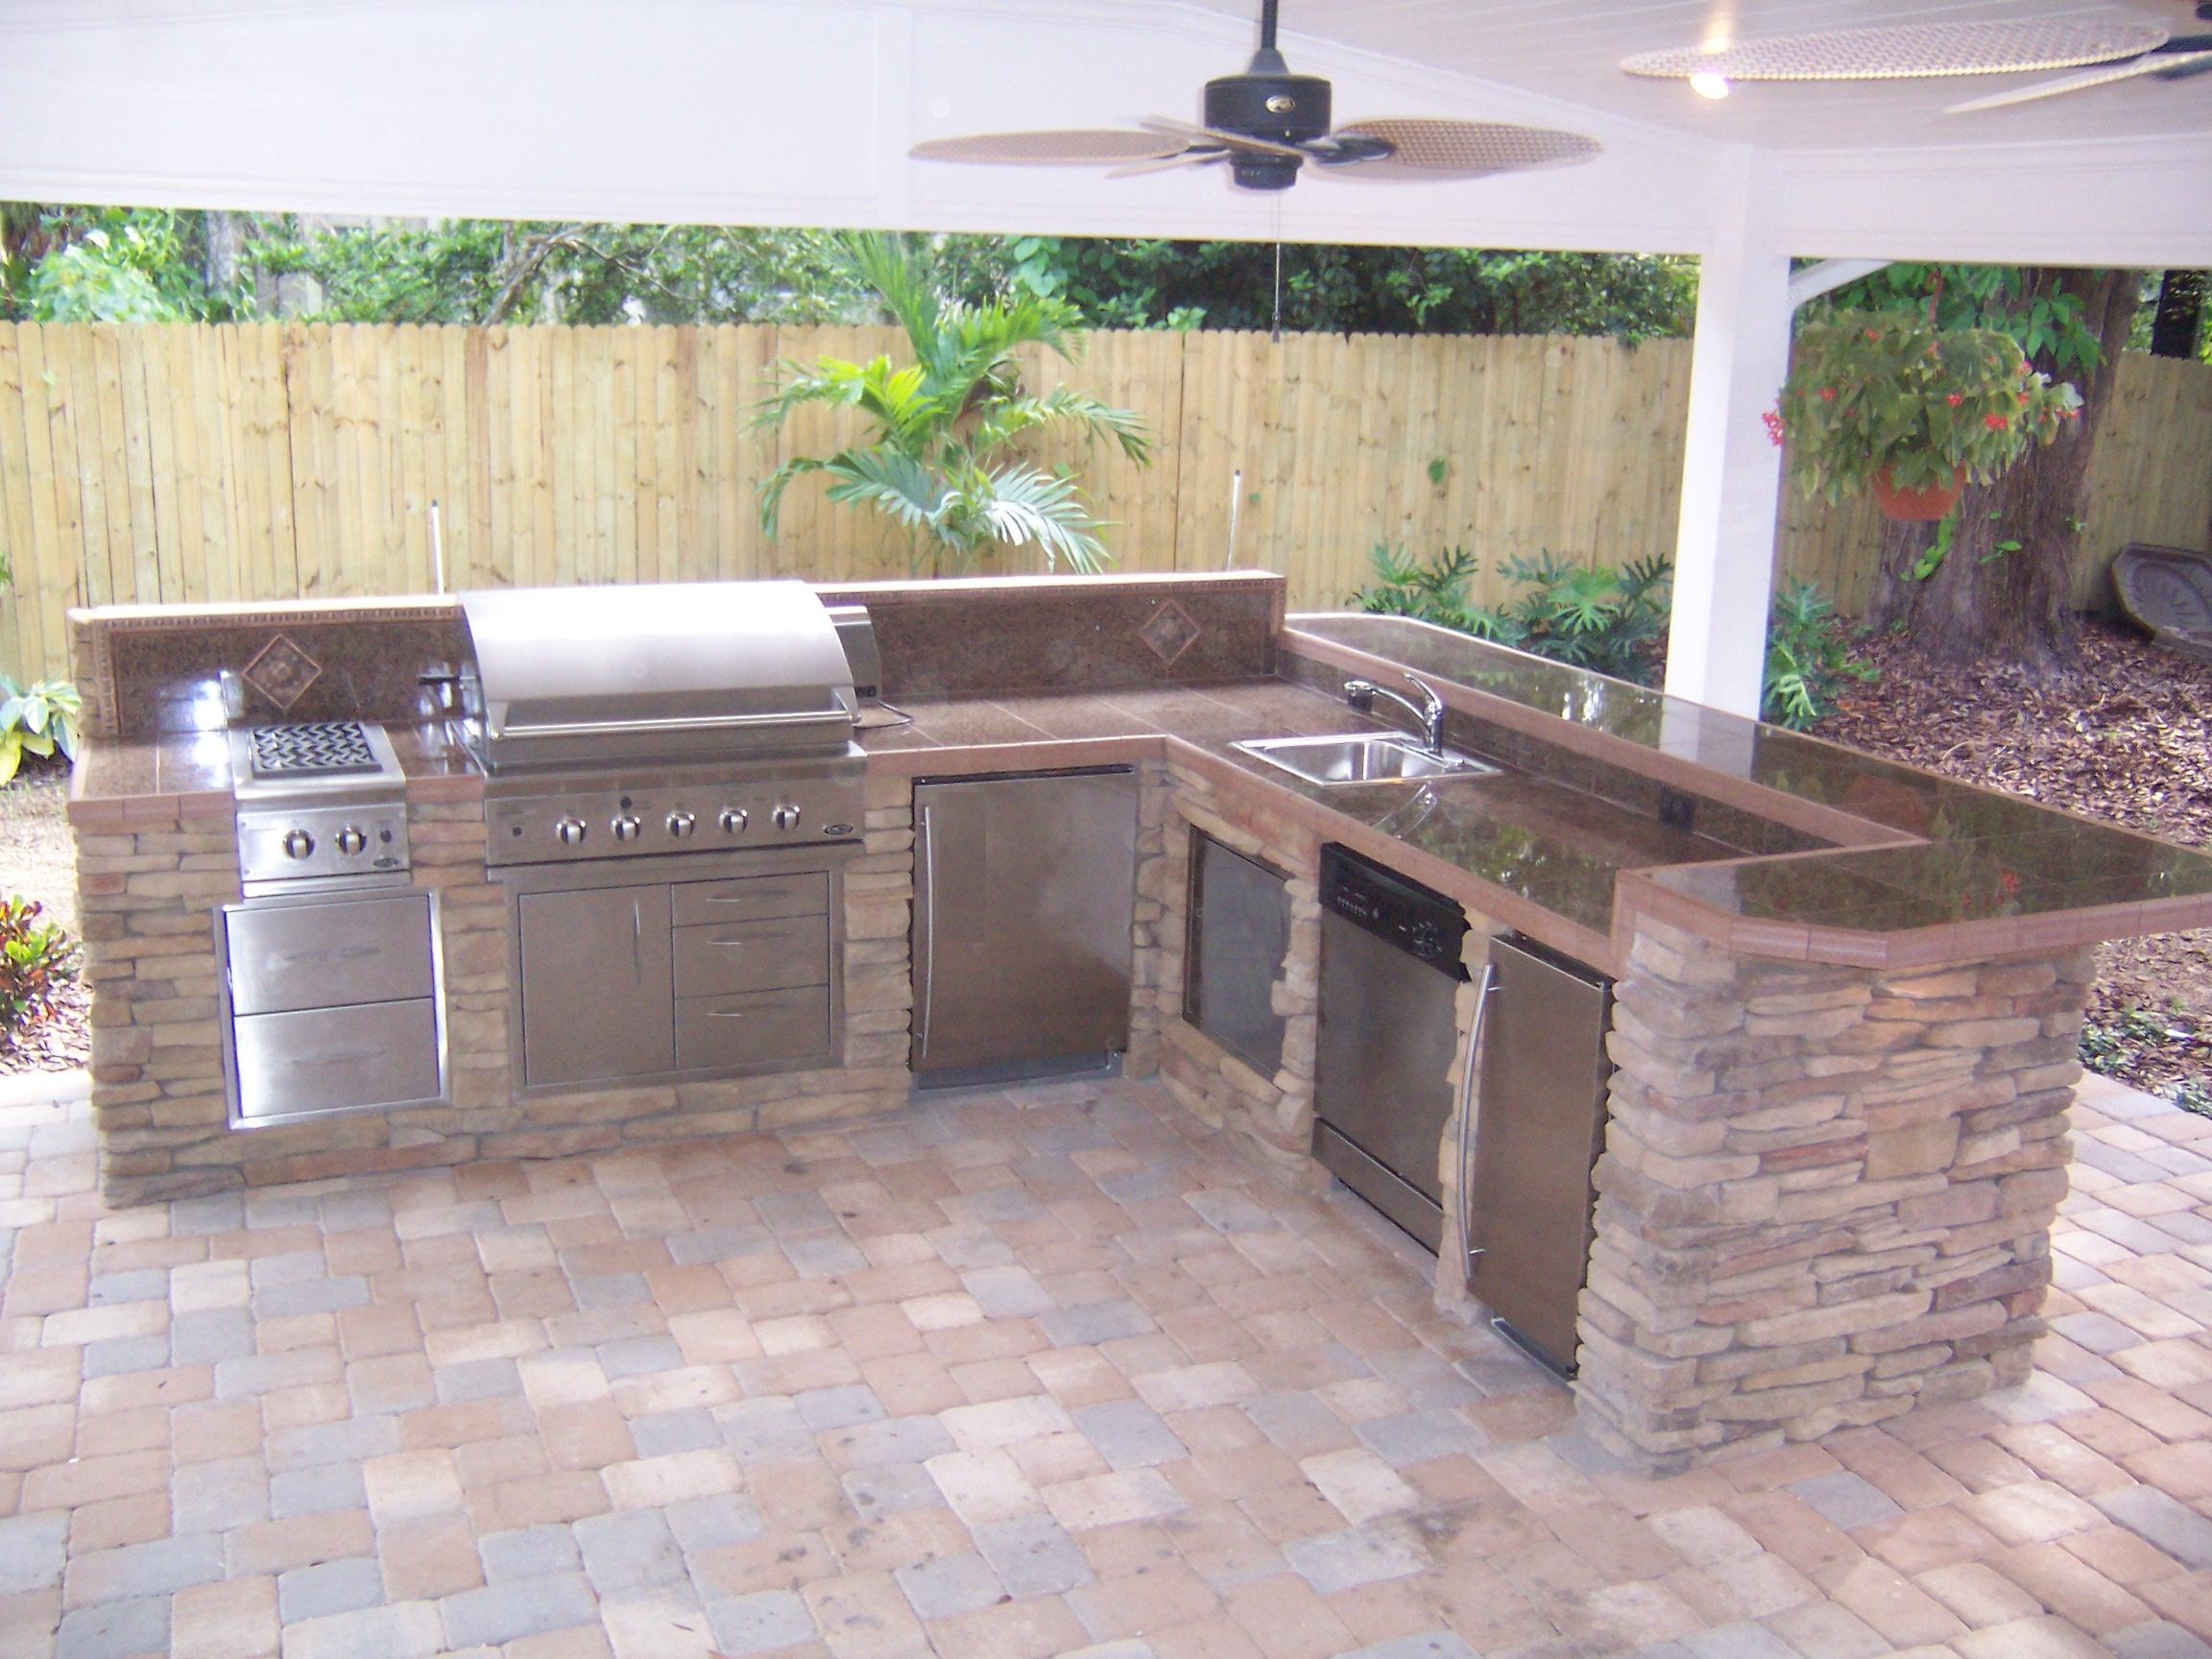 permanent kitchen islands outdoor kitchen creations orlando dandk organizer 14538